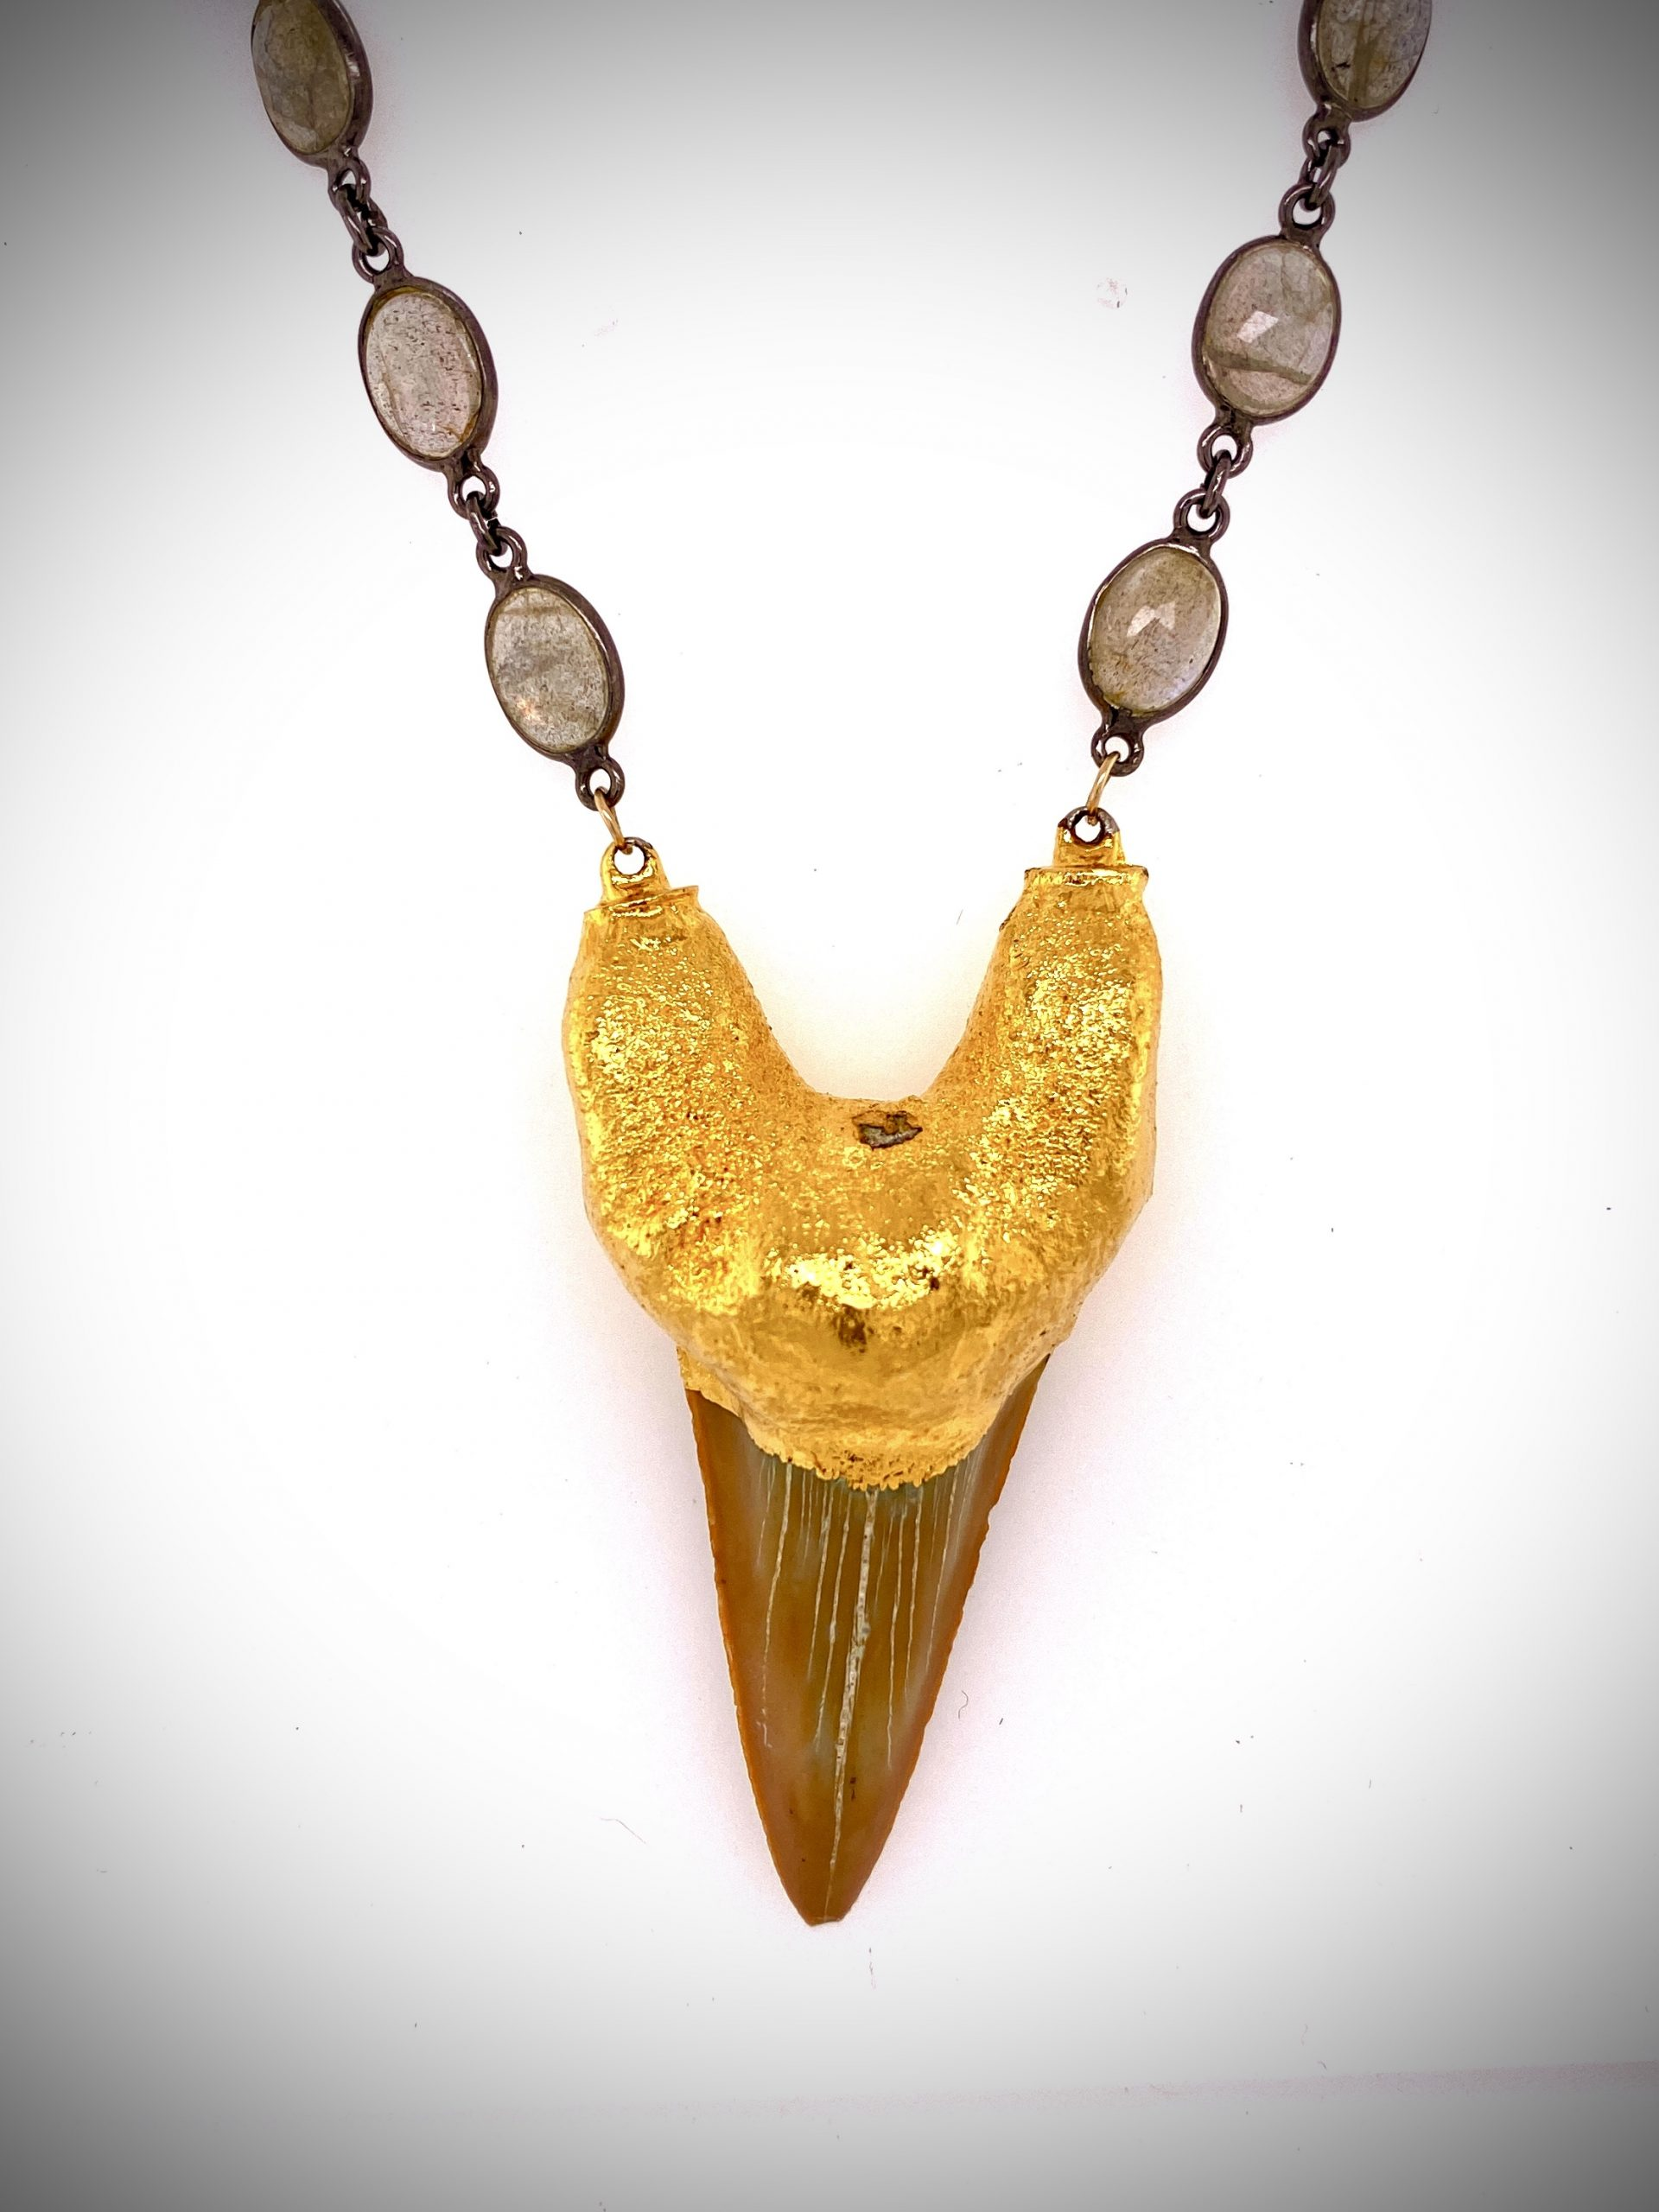 A dramatically simple necklace using a large fossilized Shark's tooth gold formed with 14K yellow gold and suspended from a handmade sterling chain set with faceted Spectralite beads